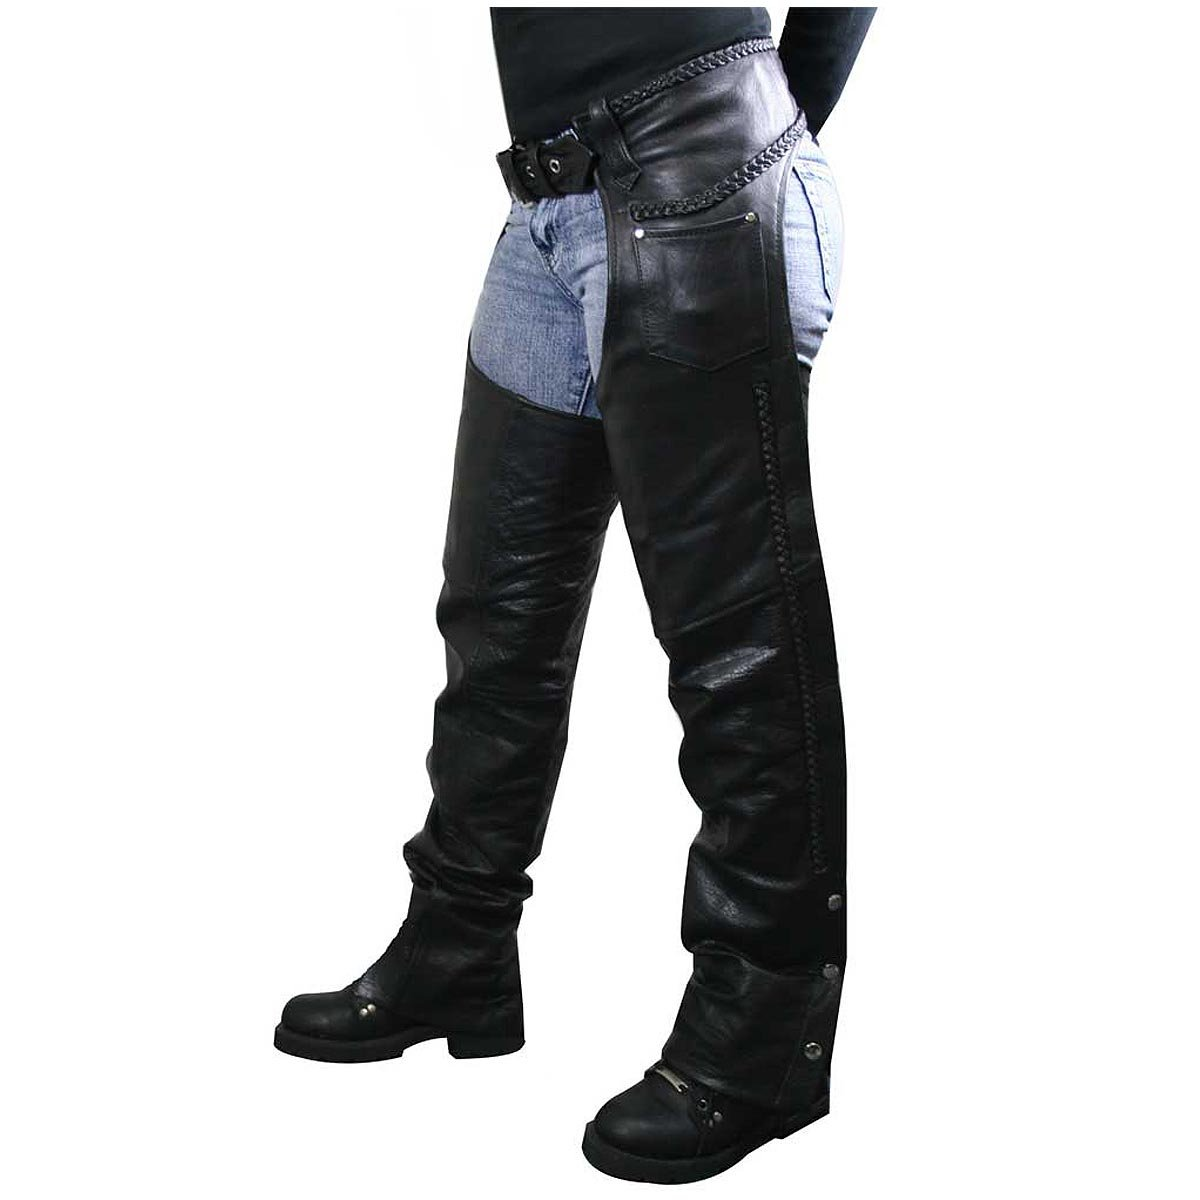 Xelement 7701 Womens Black Braided Leather Chaps - 24